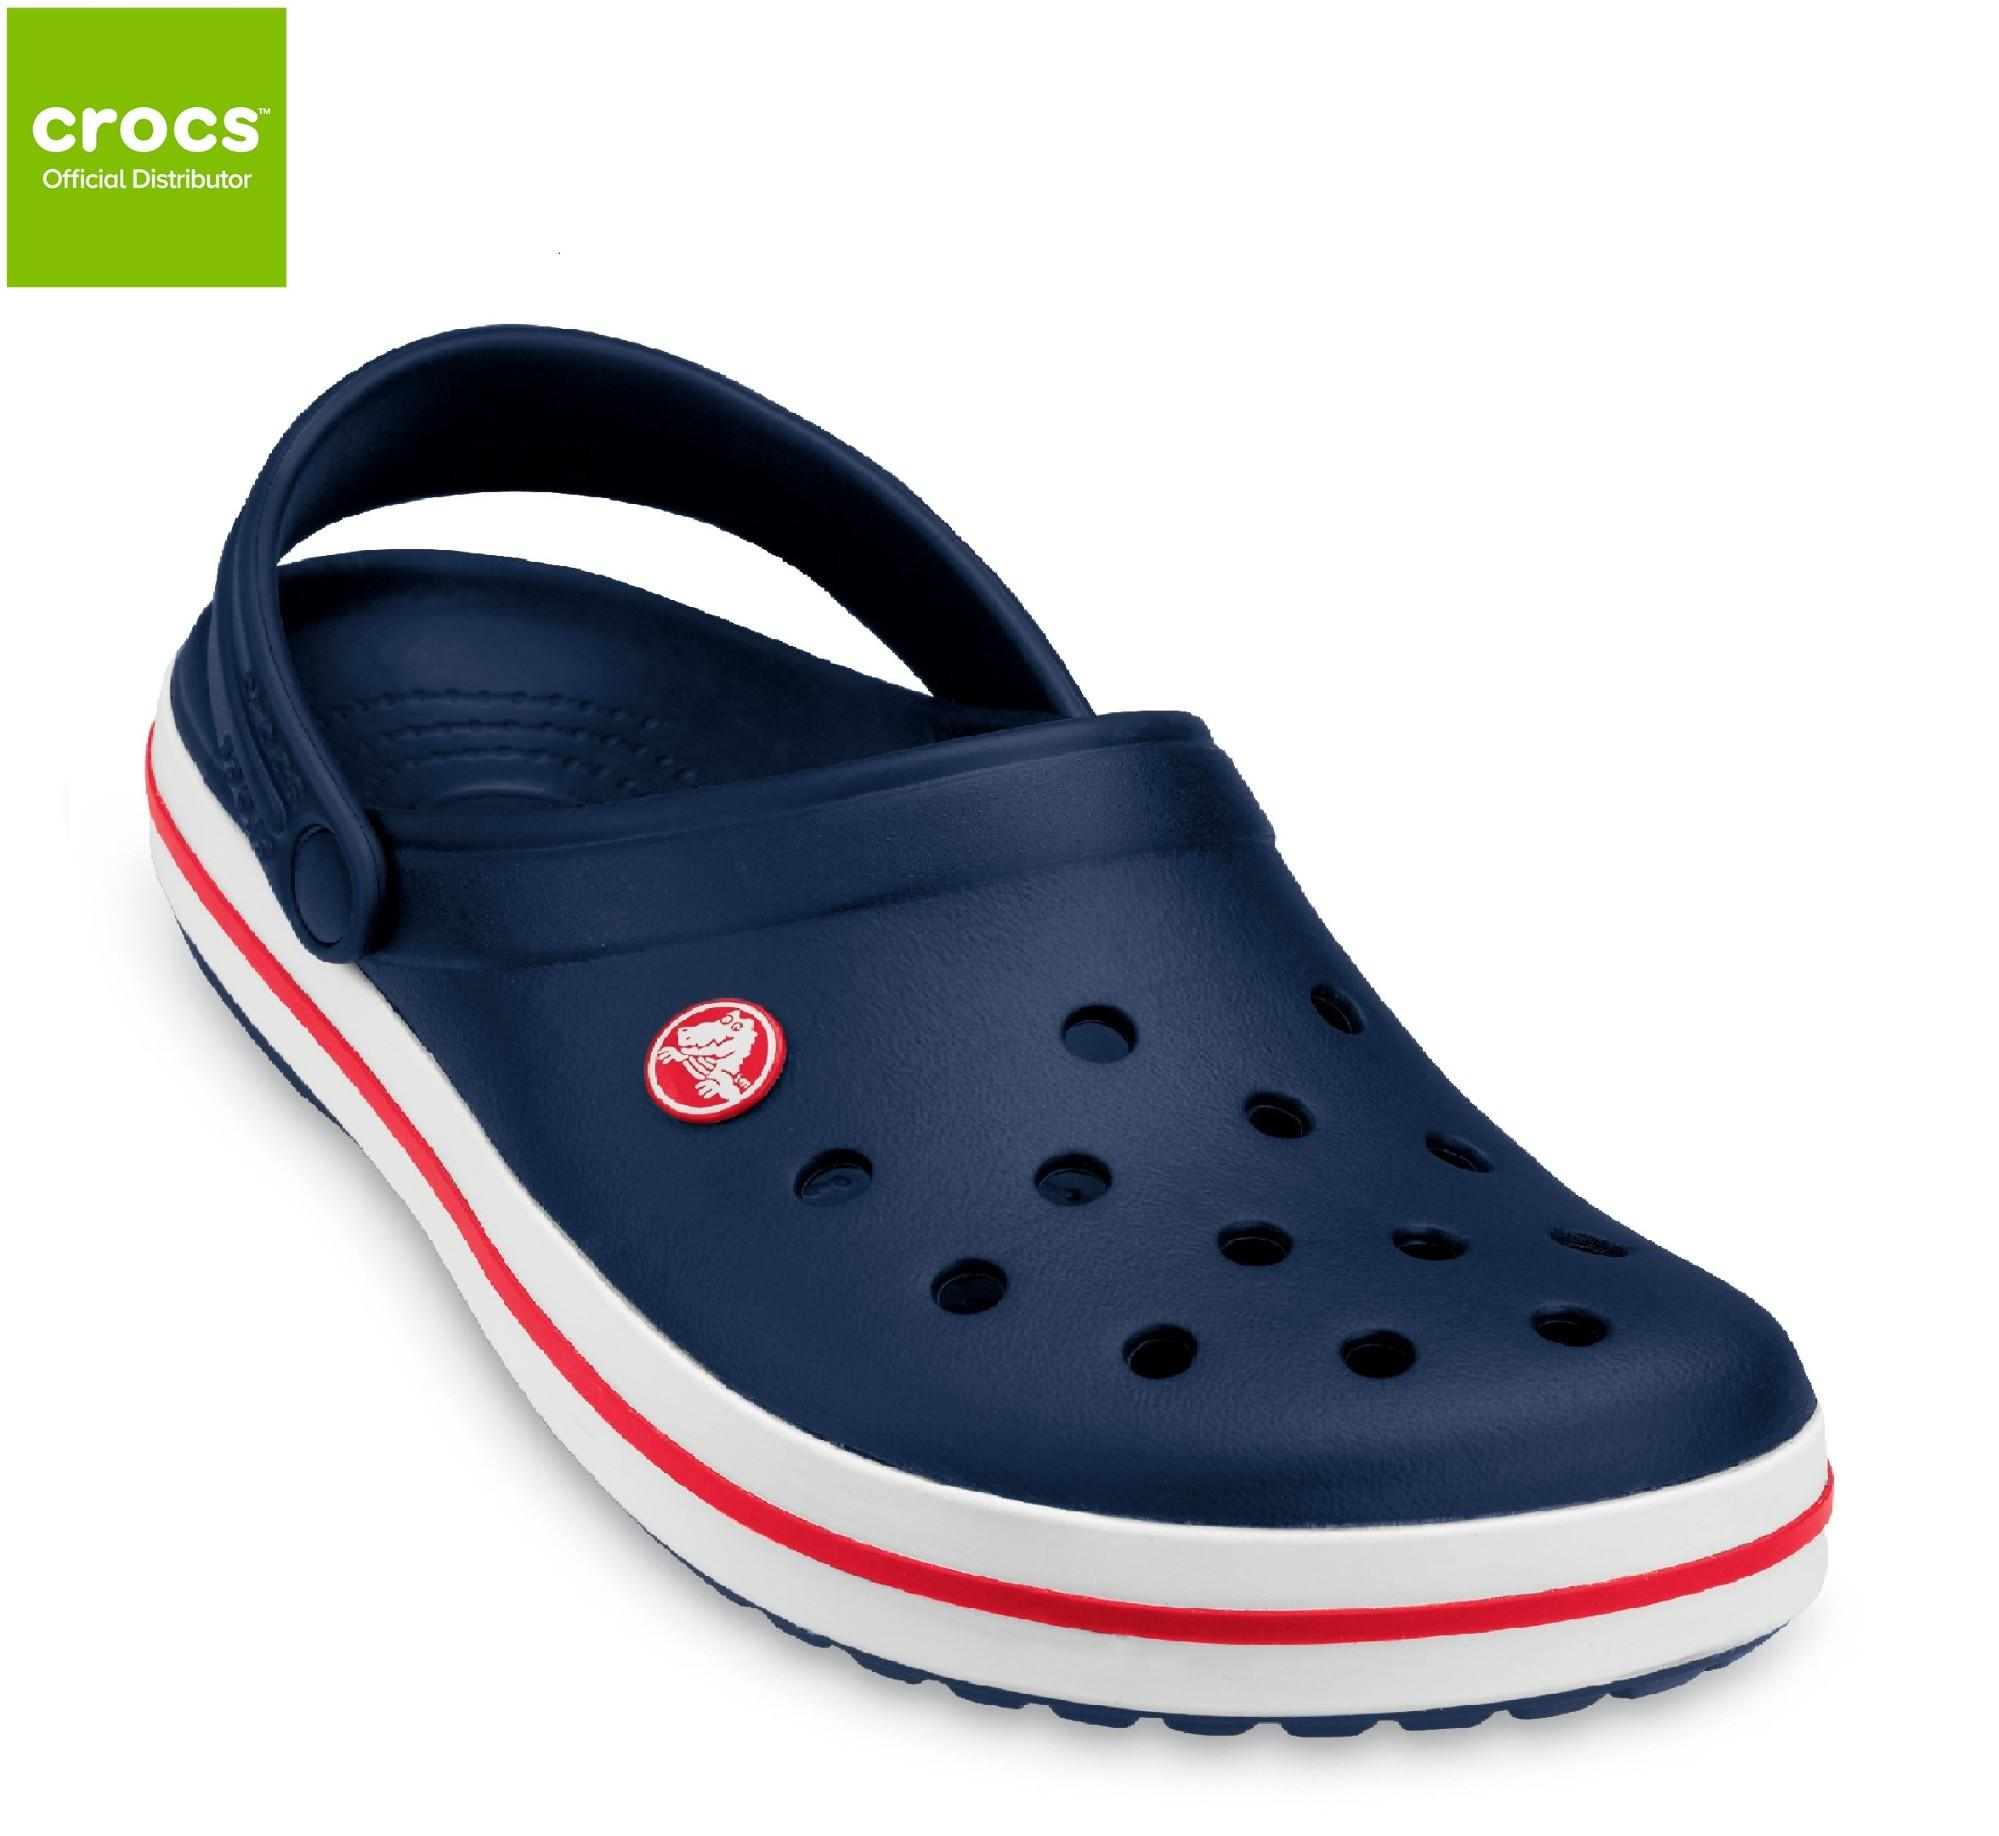 047301d23 Crocs Philippines  Crocs price list - Crocs Flats